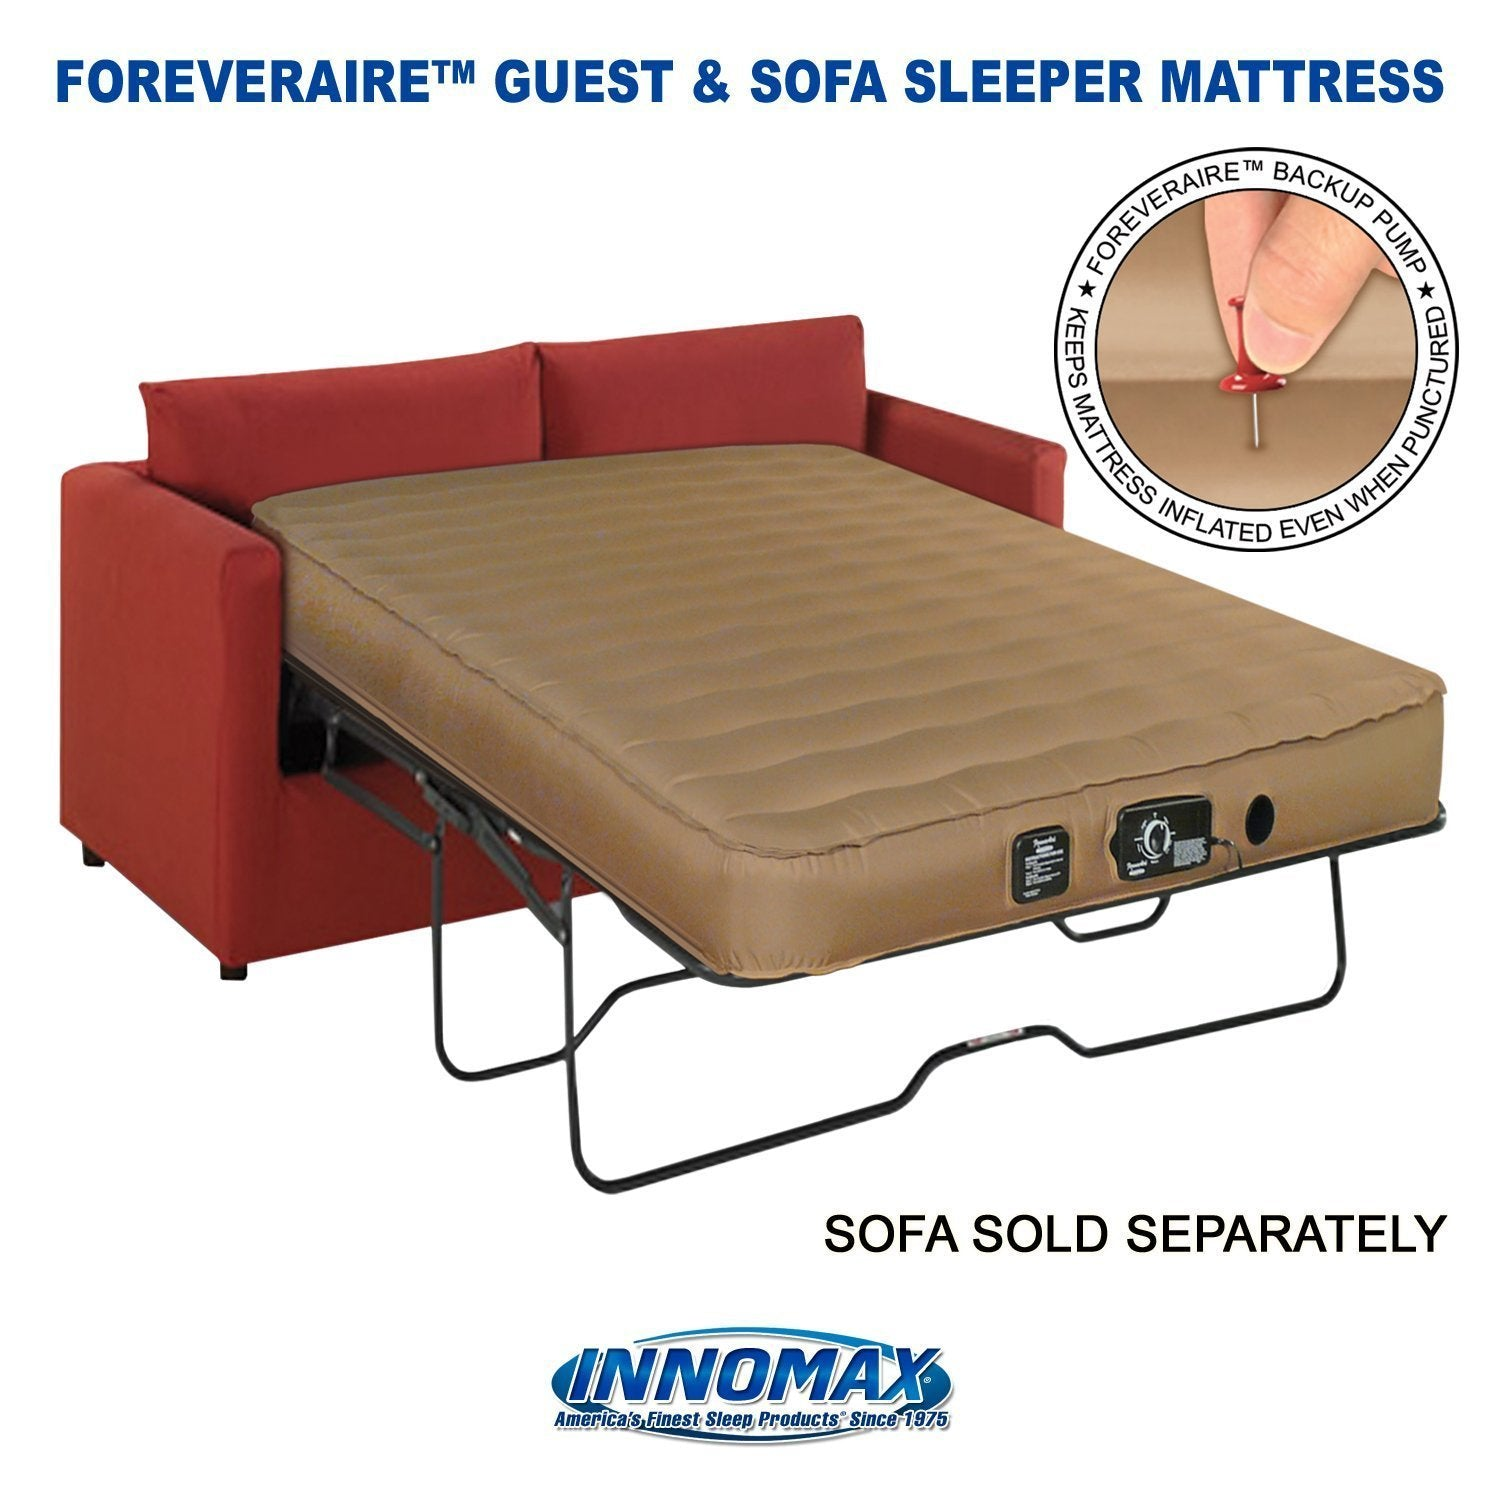 Astounding Automatic Air Mattress For Rv Sofa Bed Guest And Sofa Caraccident5 Cool Chair Designs And Ideas Caraccident5Info